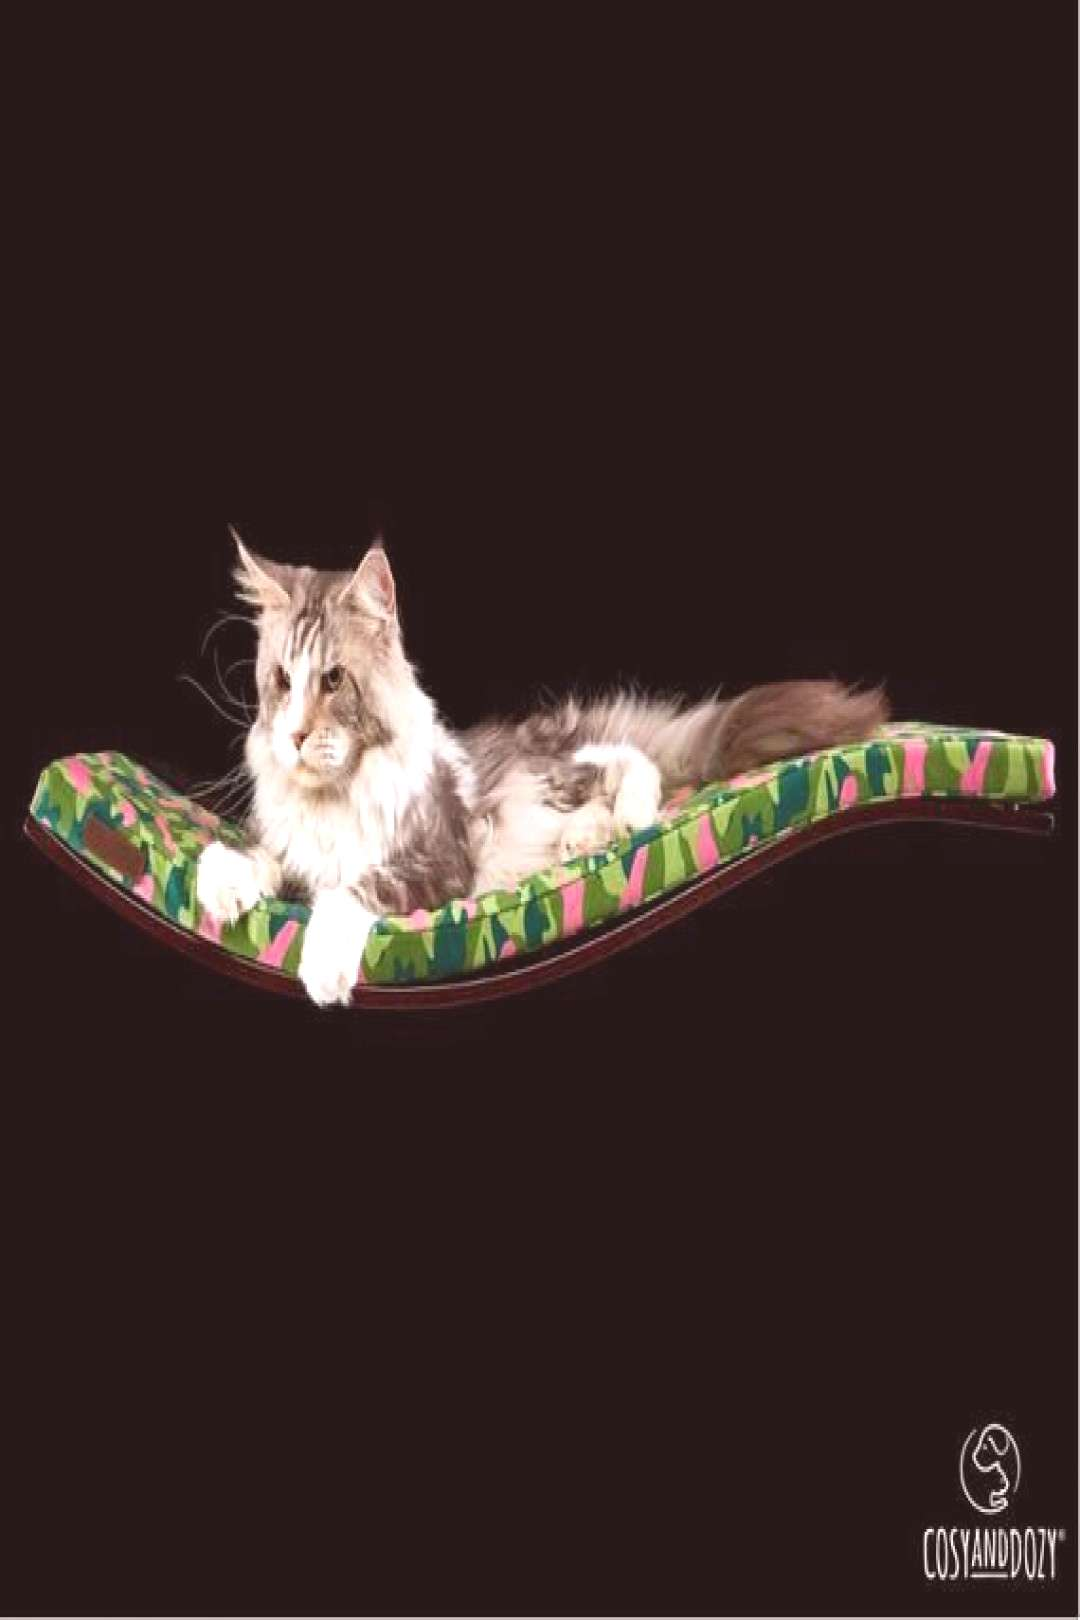 NEW!!! Wall Mounted Cat Bed, Cat Playground, Designer Pet Furniture, PINK CAMO, Wall Mounted ... NE